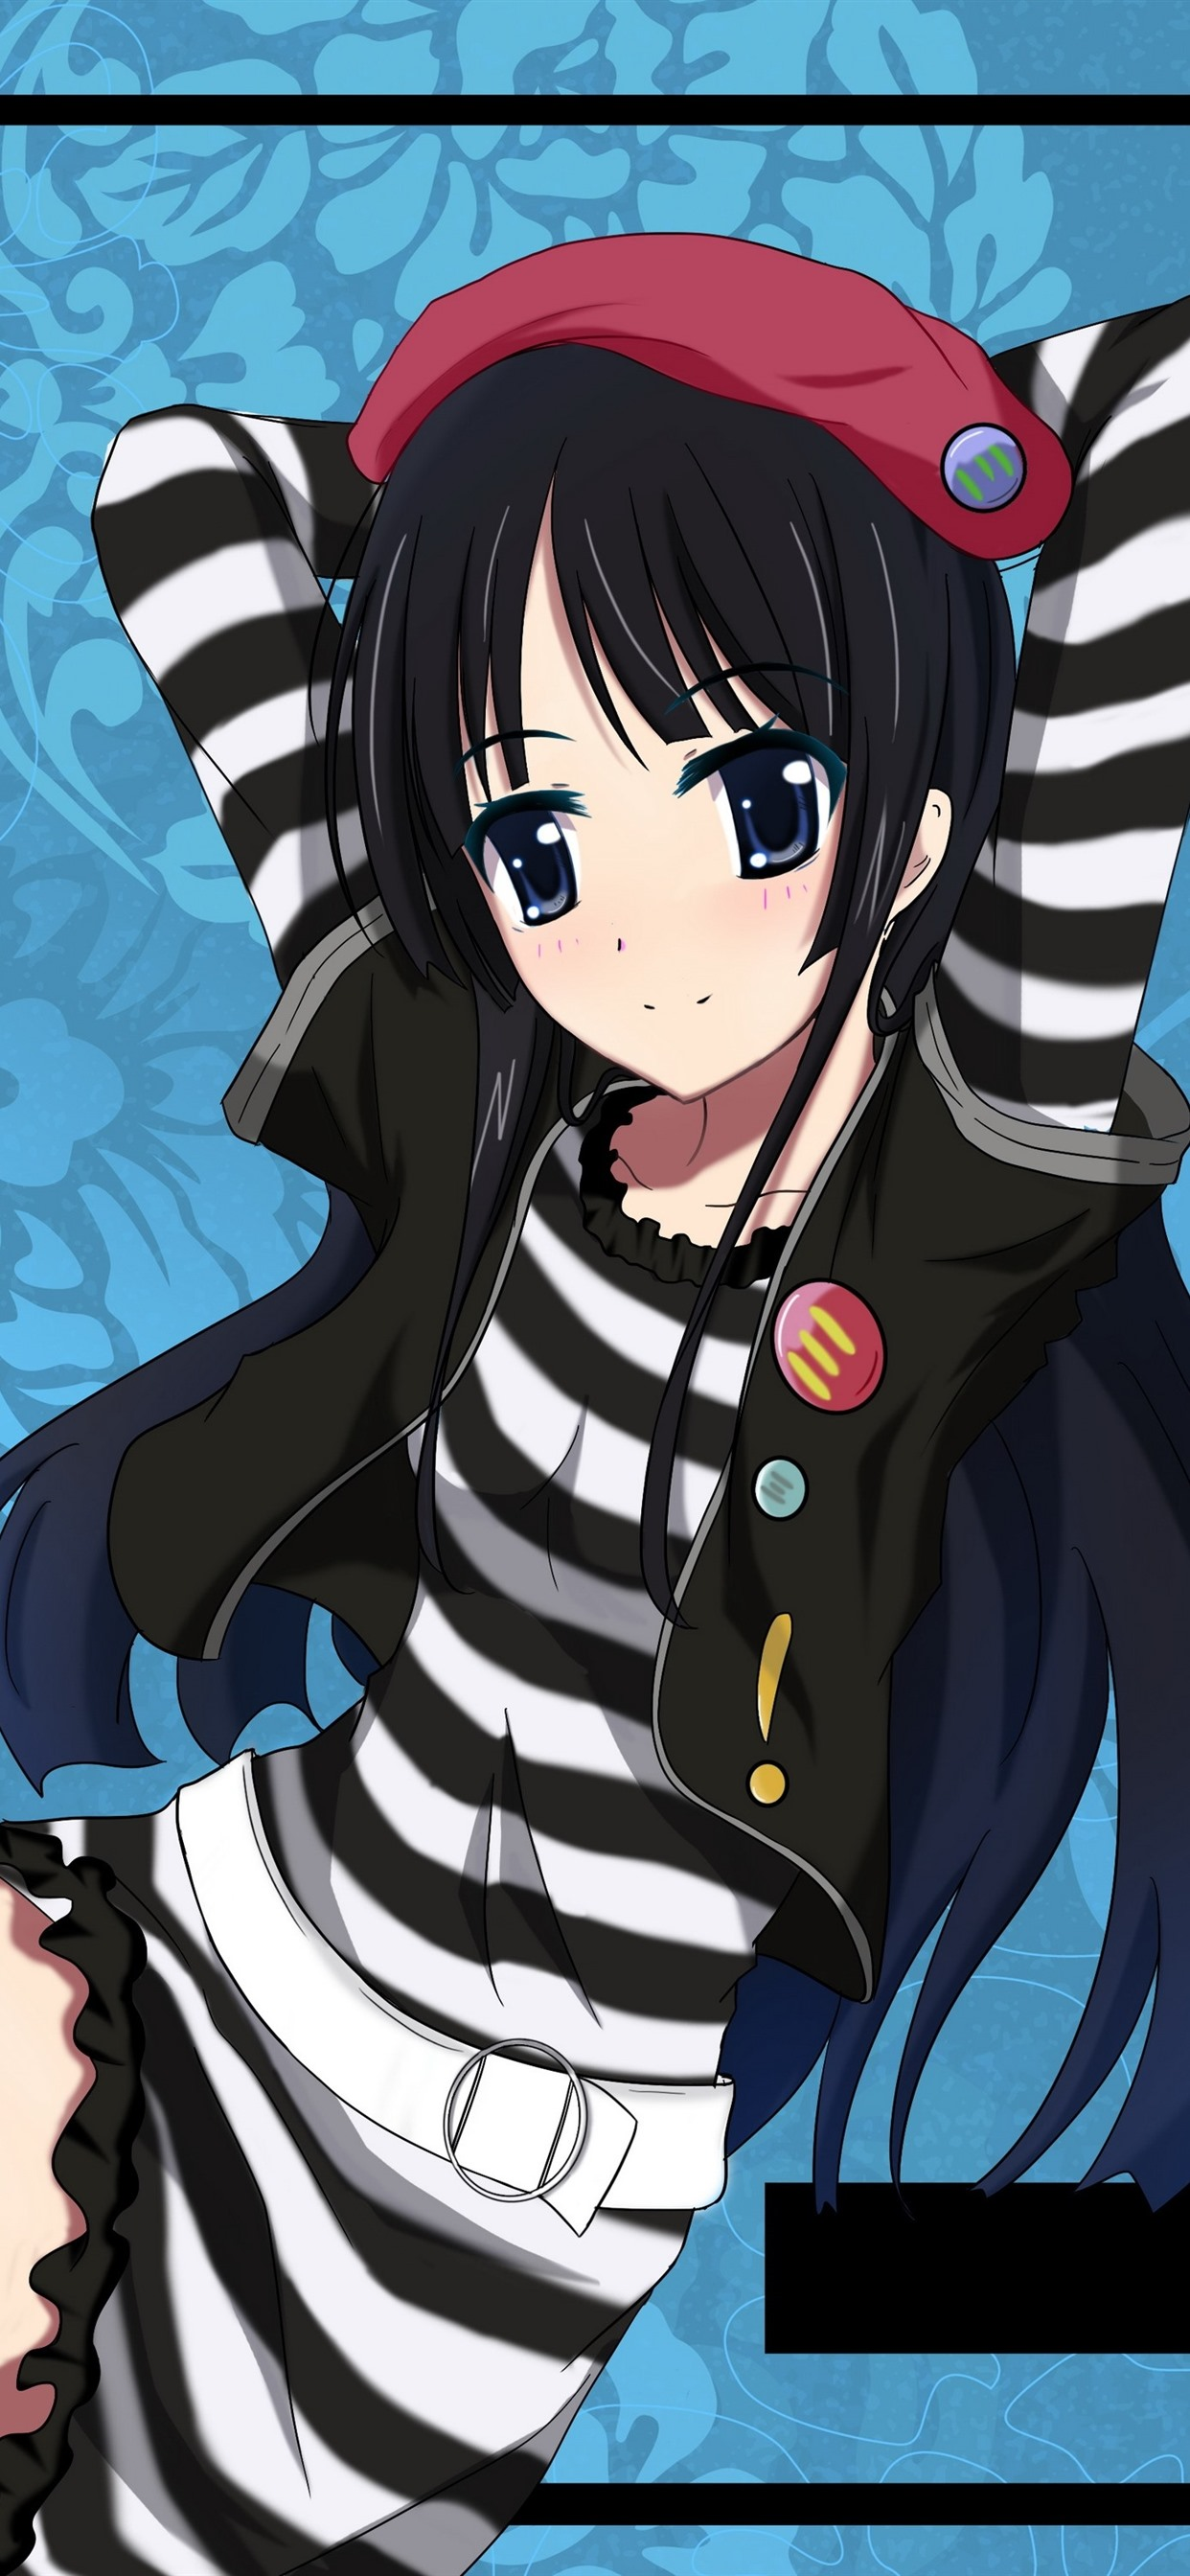 Black Hair Anime Girl Pose 1242x2688 Iphone 11 Pro Xs Max Wallpaper Background Picture Image